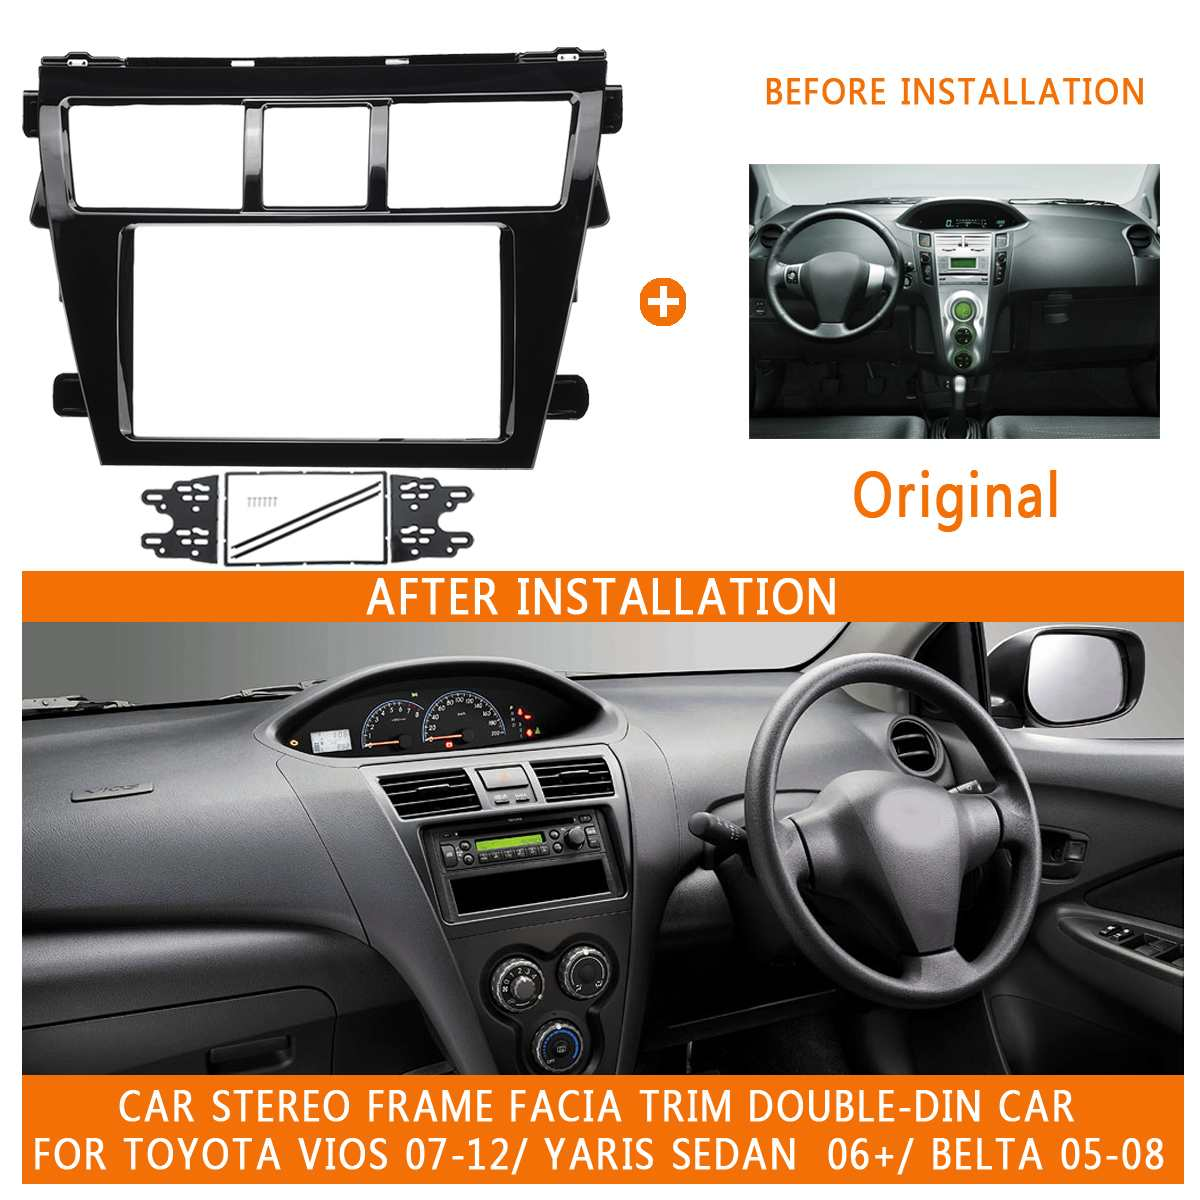 Single Din Car CD Stereo Fascia Facia Fitting Kit for Toyota Yaris 2007 On